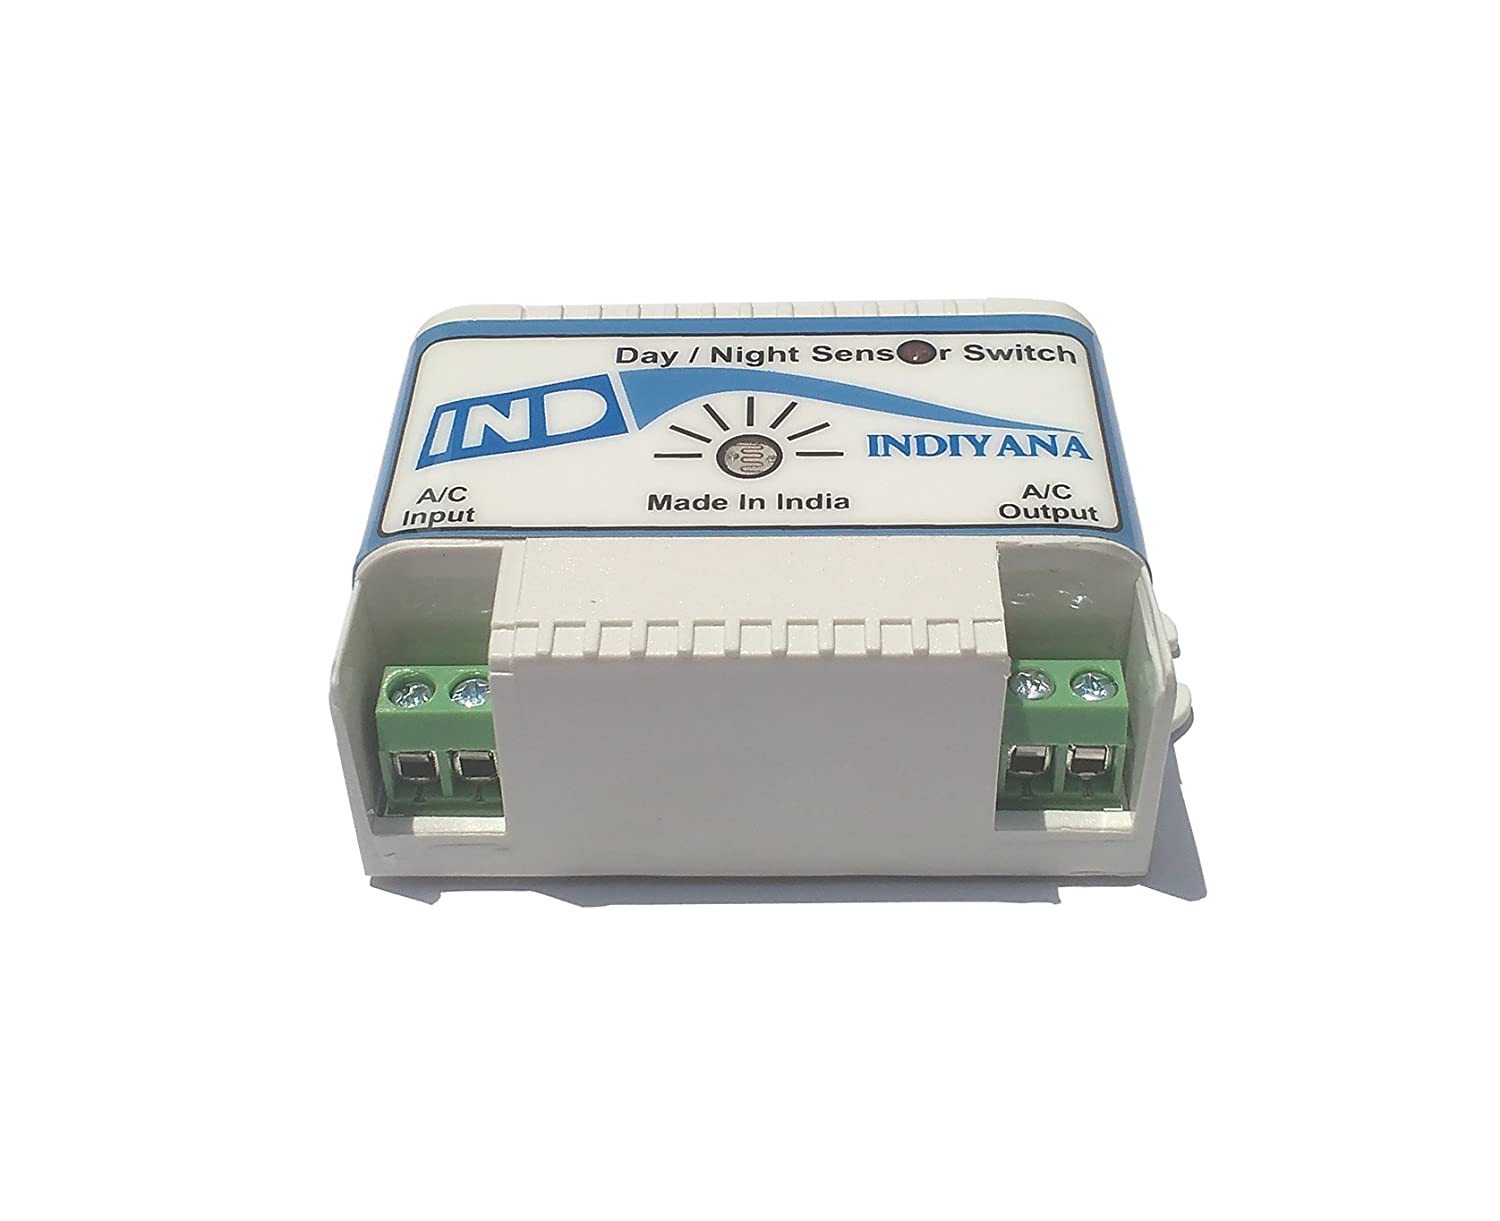 Indiyana Day Night Sensor Switch Ldr Control Auto On In Off 230v Automatic Lamp Morning For 230 Volt Ac Lighting Dusk To Dawn Light